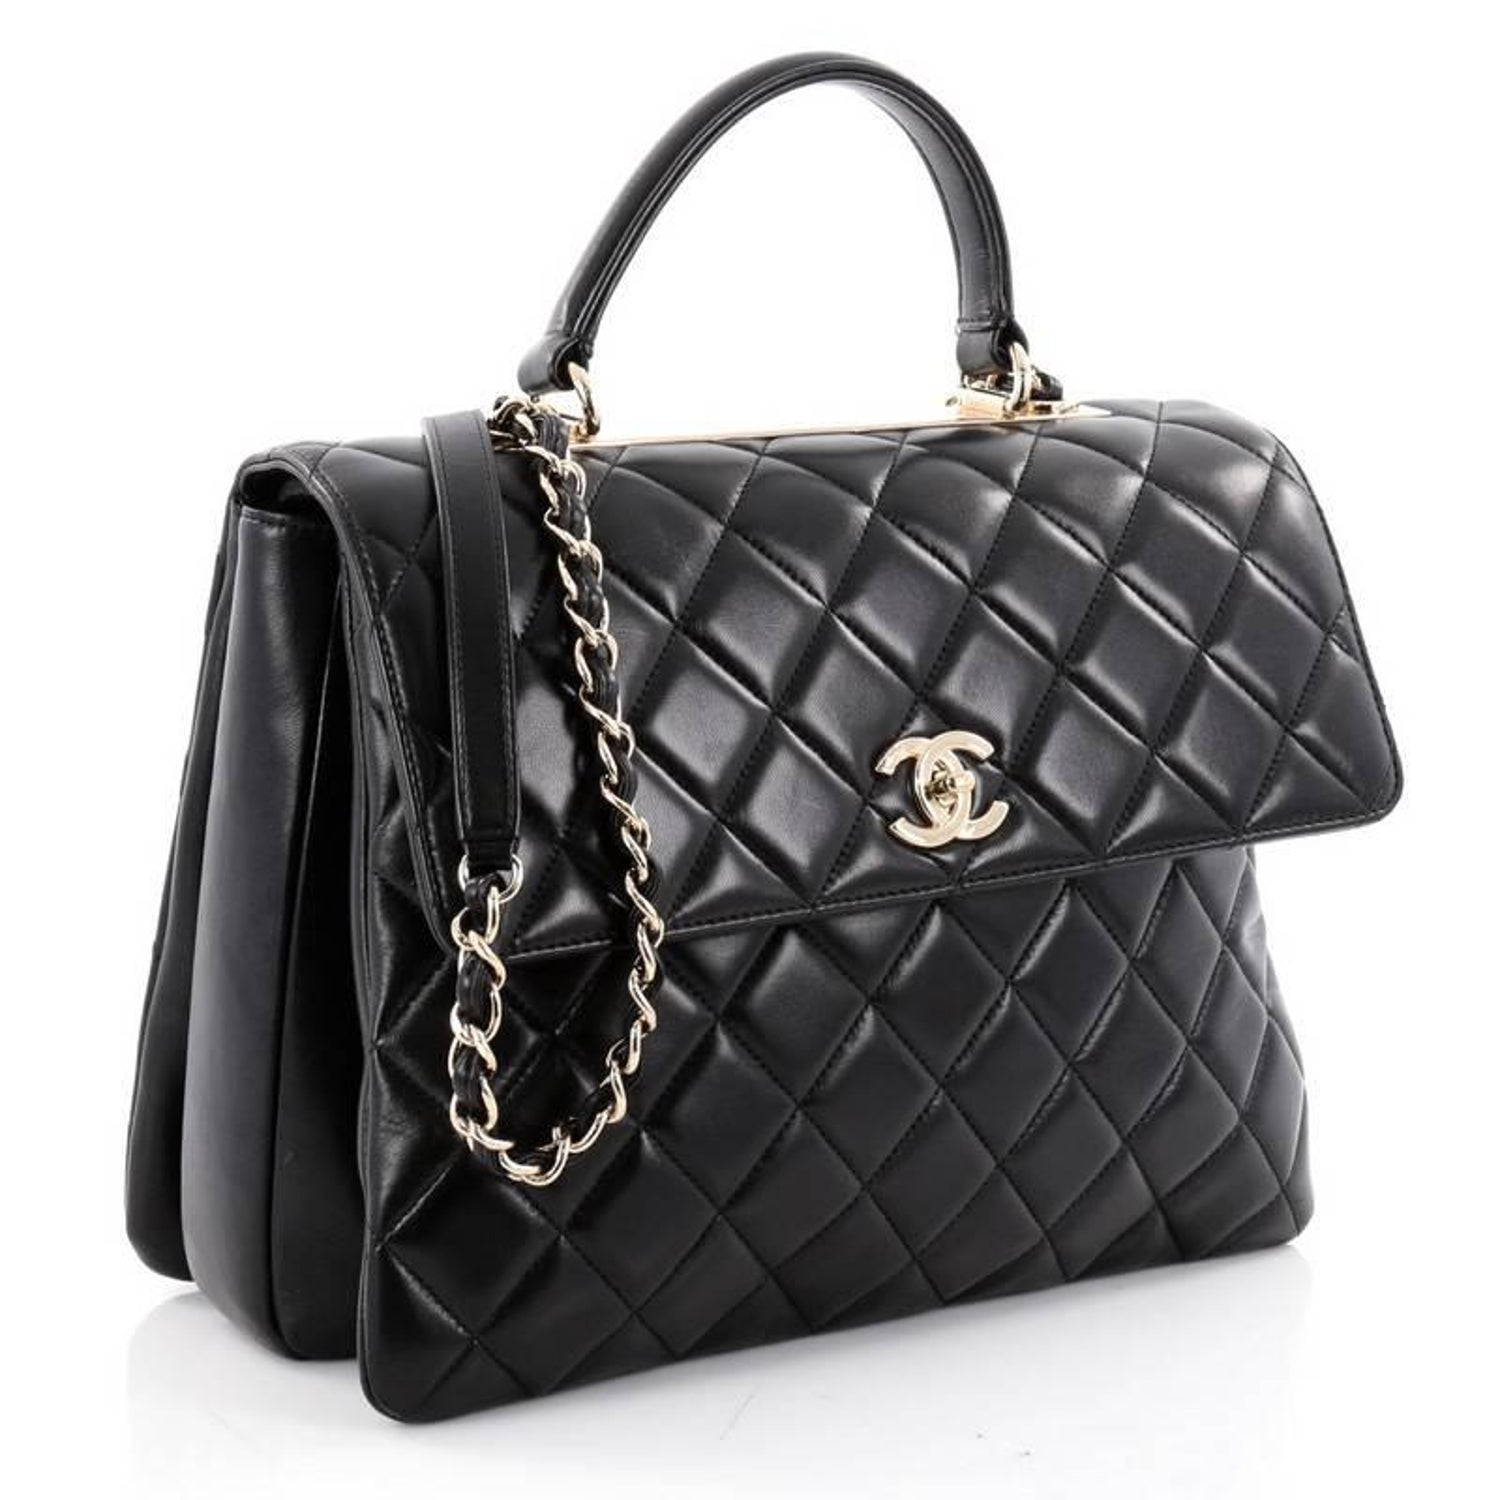 0b784baaa0dbb Chanel Trendy CC Top Handle Bag Quilted Lambskin Large at 1stdibs